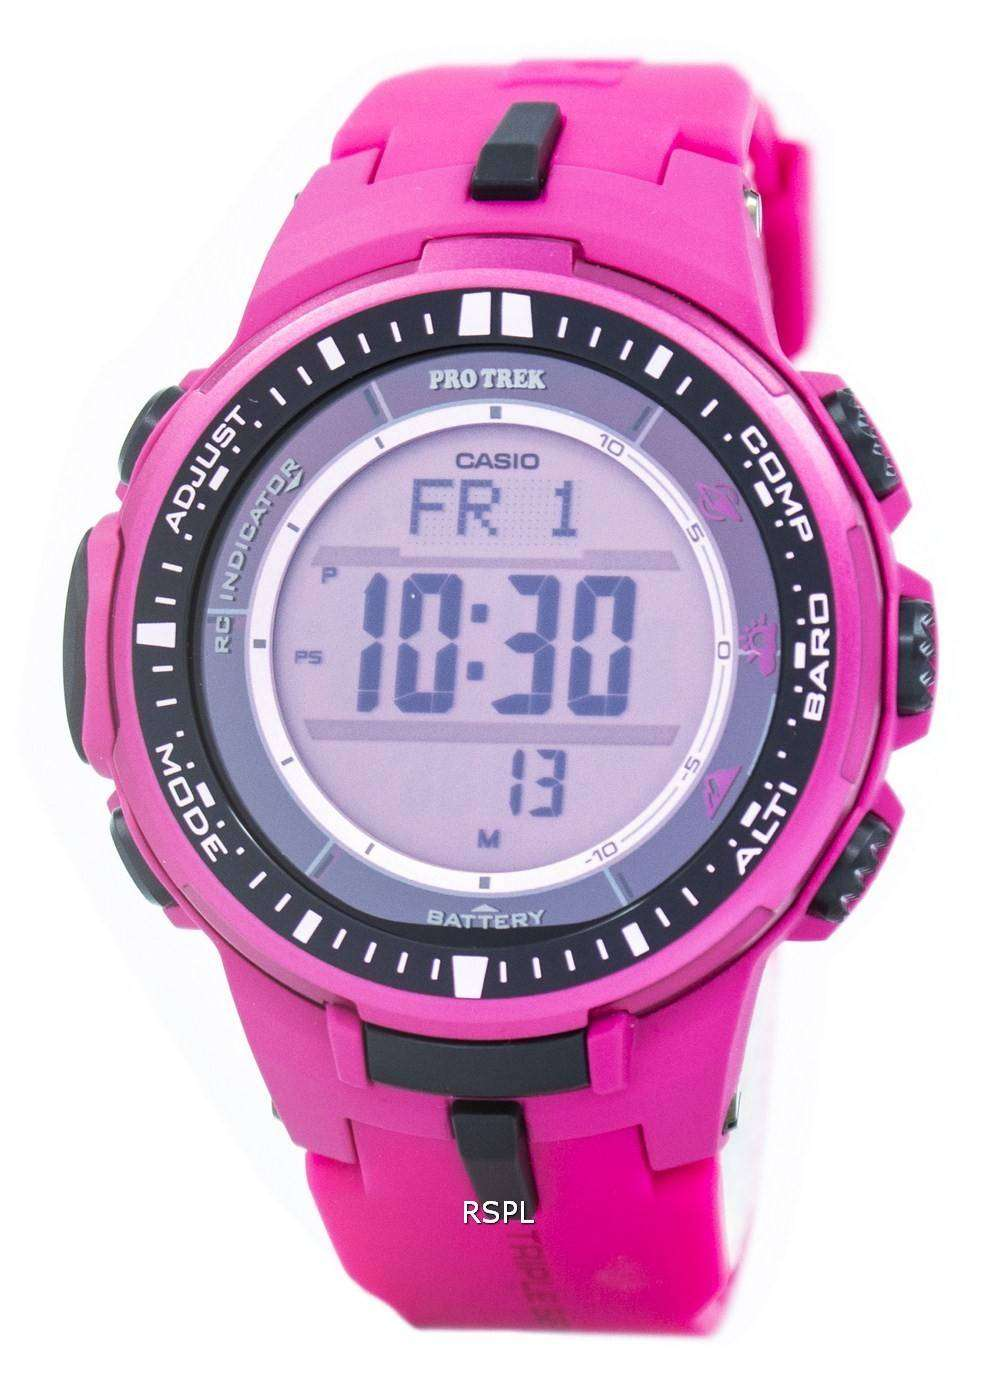 Casio Protrek Atomic Tough Solar Triple Sensor Pink Prw